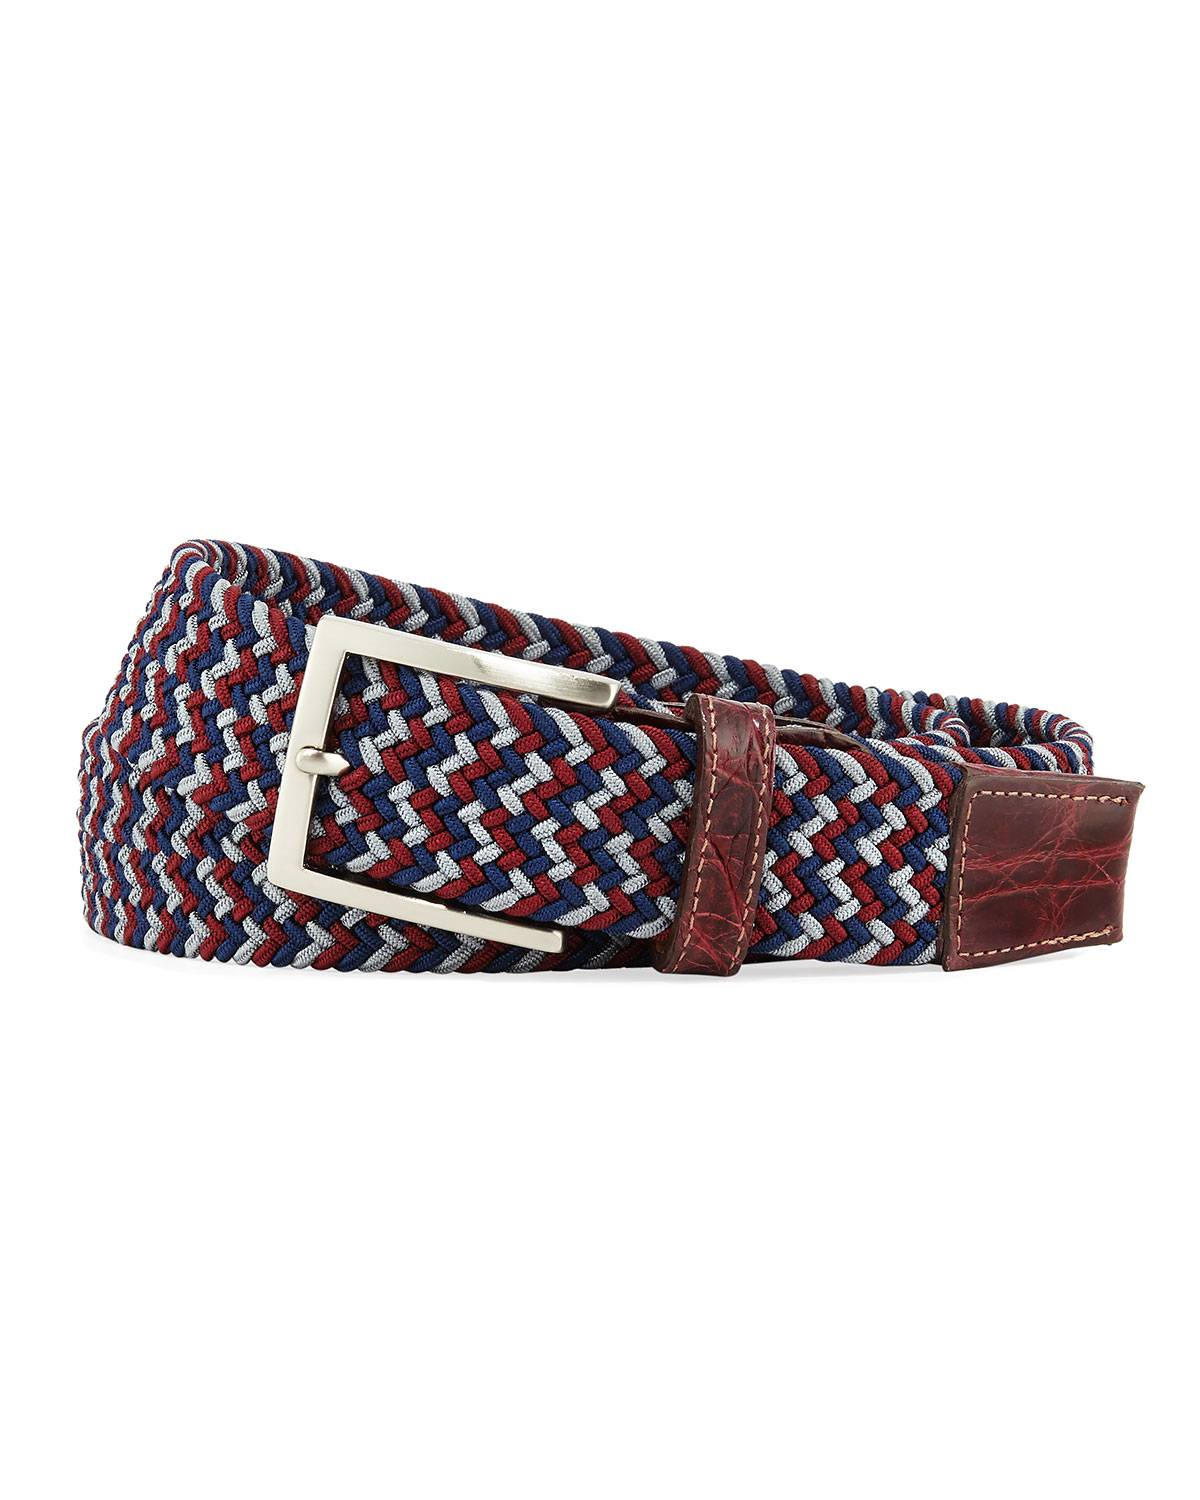 W. Kleinberg Men's Sport Stretch Belt with Crocodile-Trim, Wine - Size: 48in / 120cm